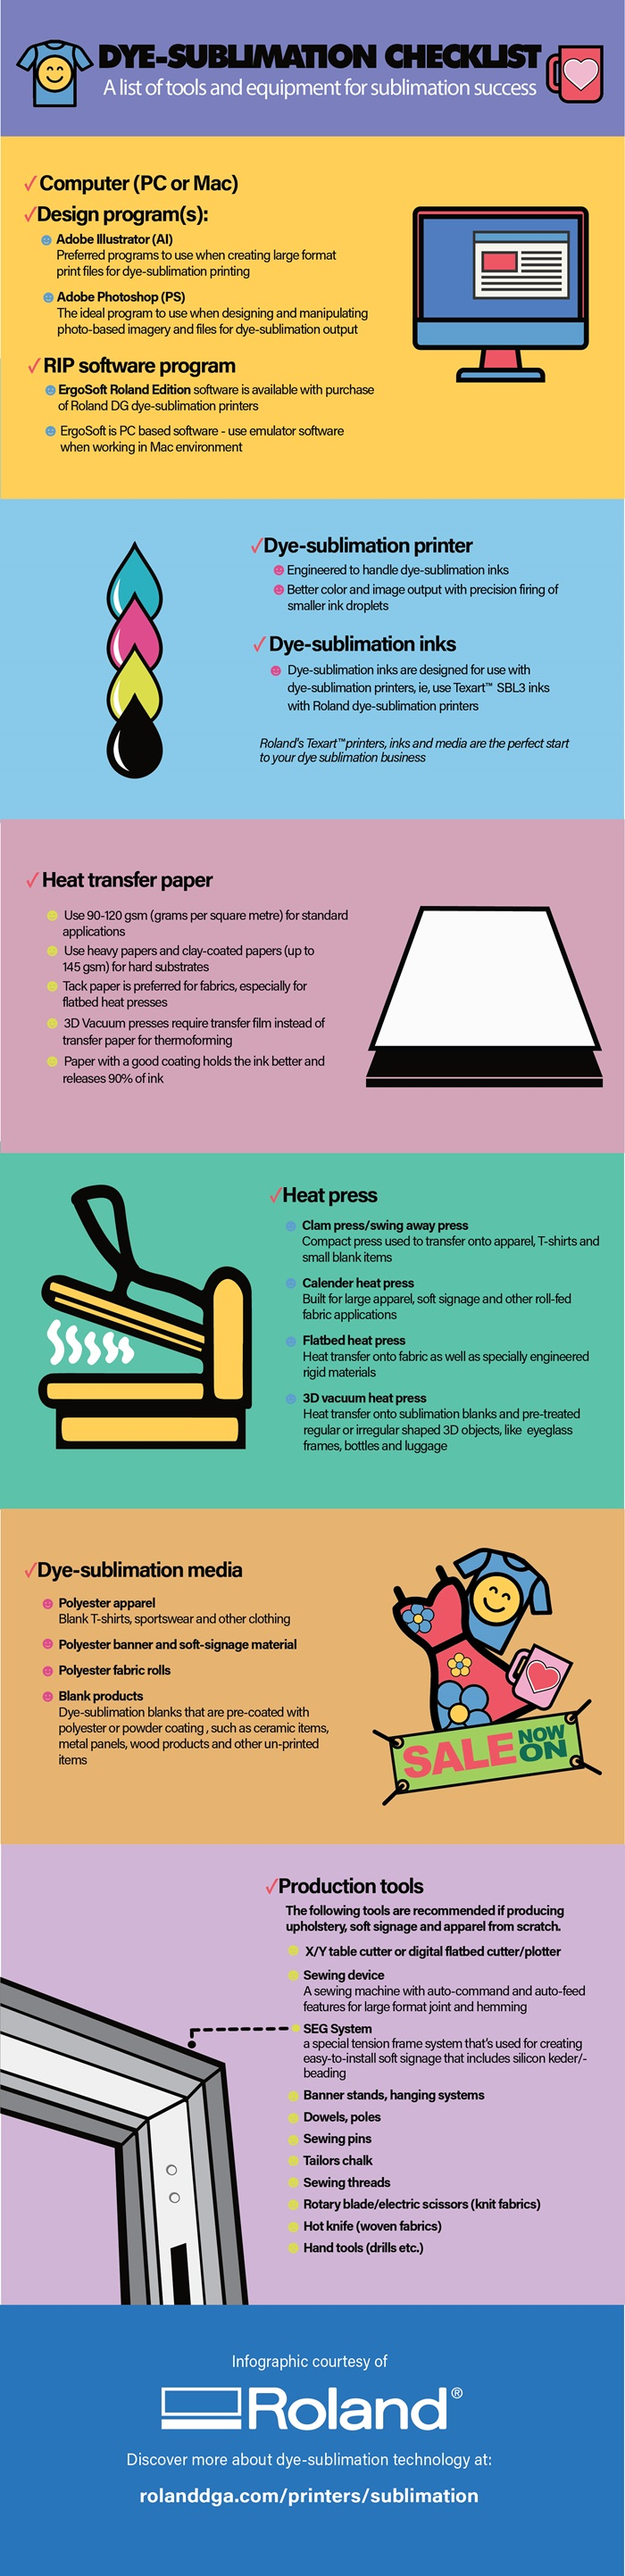 Dye-Sublimation Checklist – Infographic